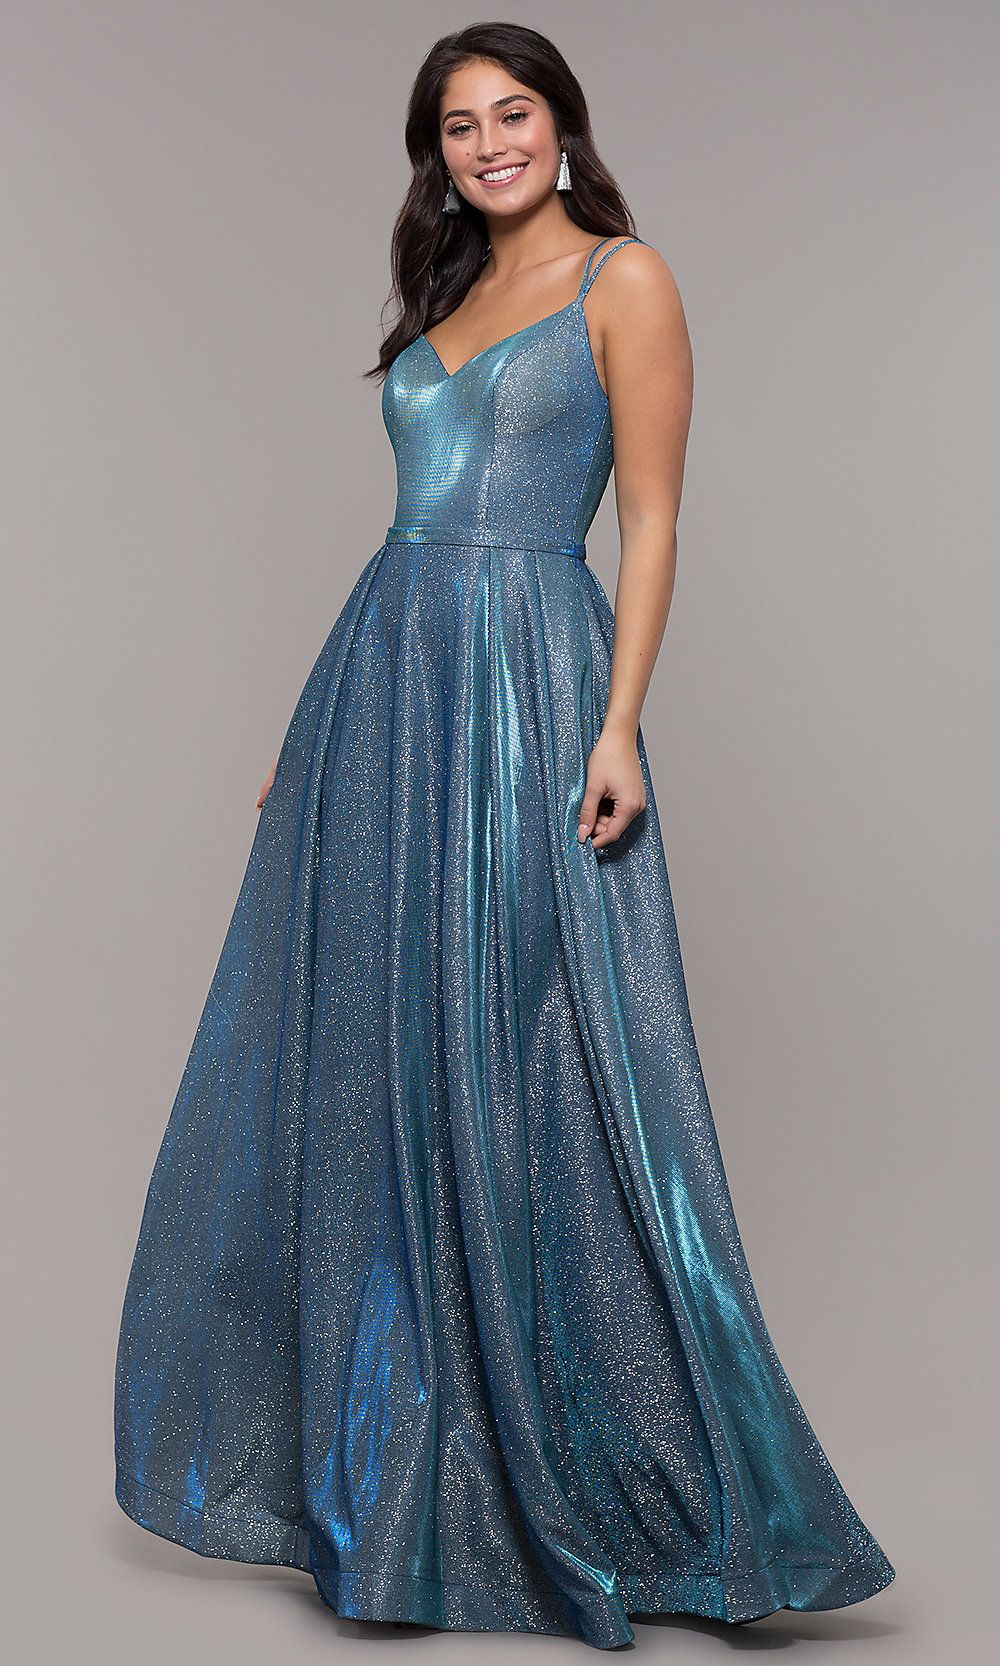 6a45503ed703a Sweetheart Long A-Line Metallic Jersey Prom Dress in 2019 | + PROM + ...